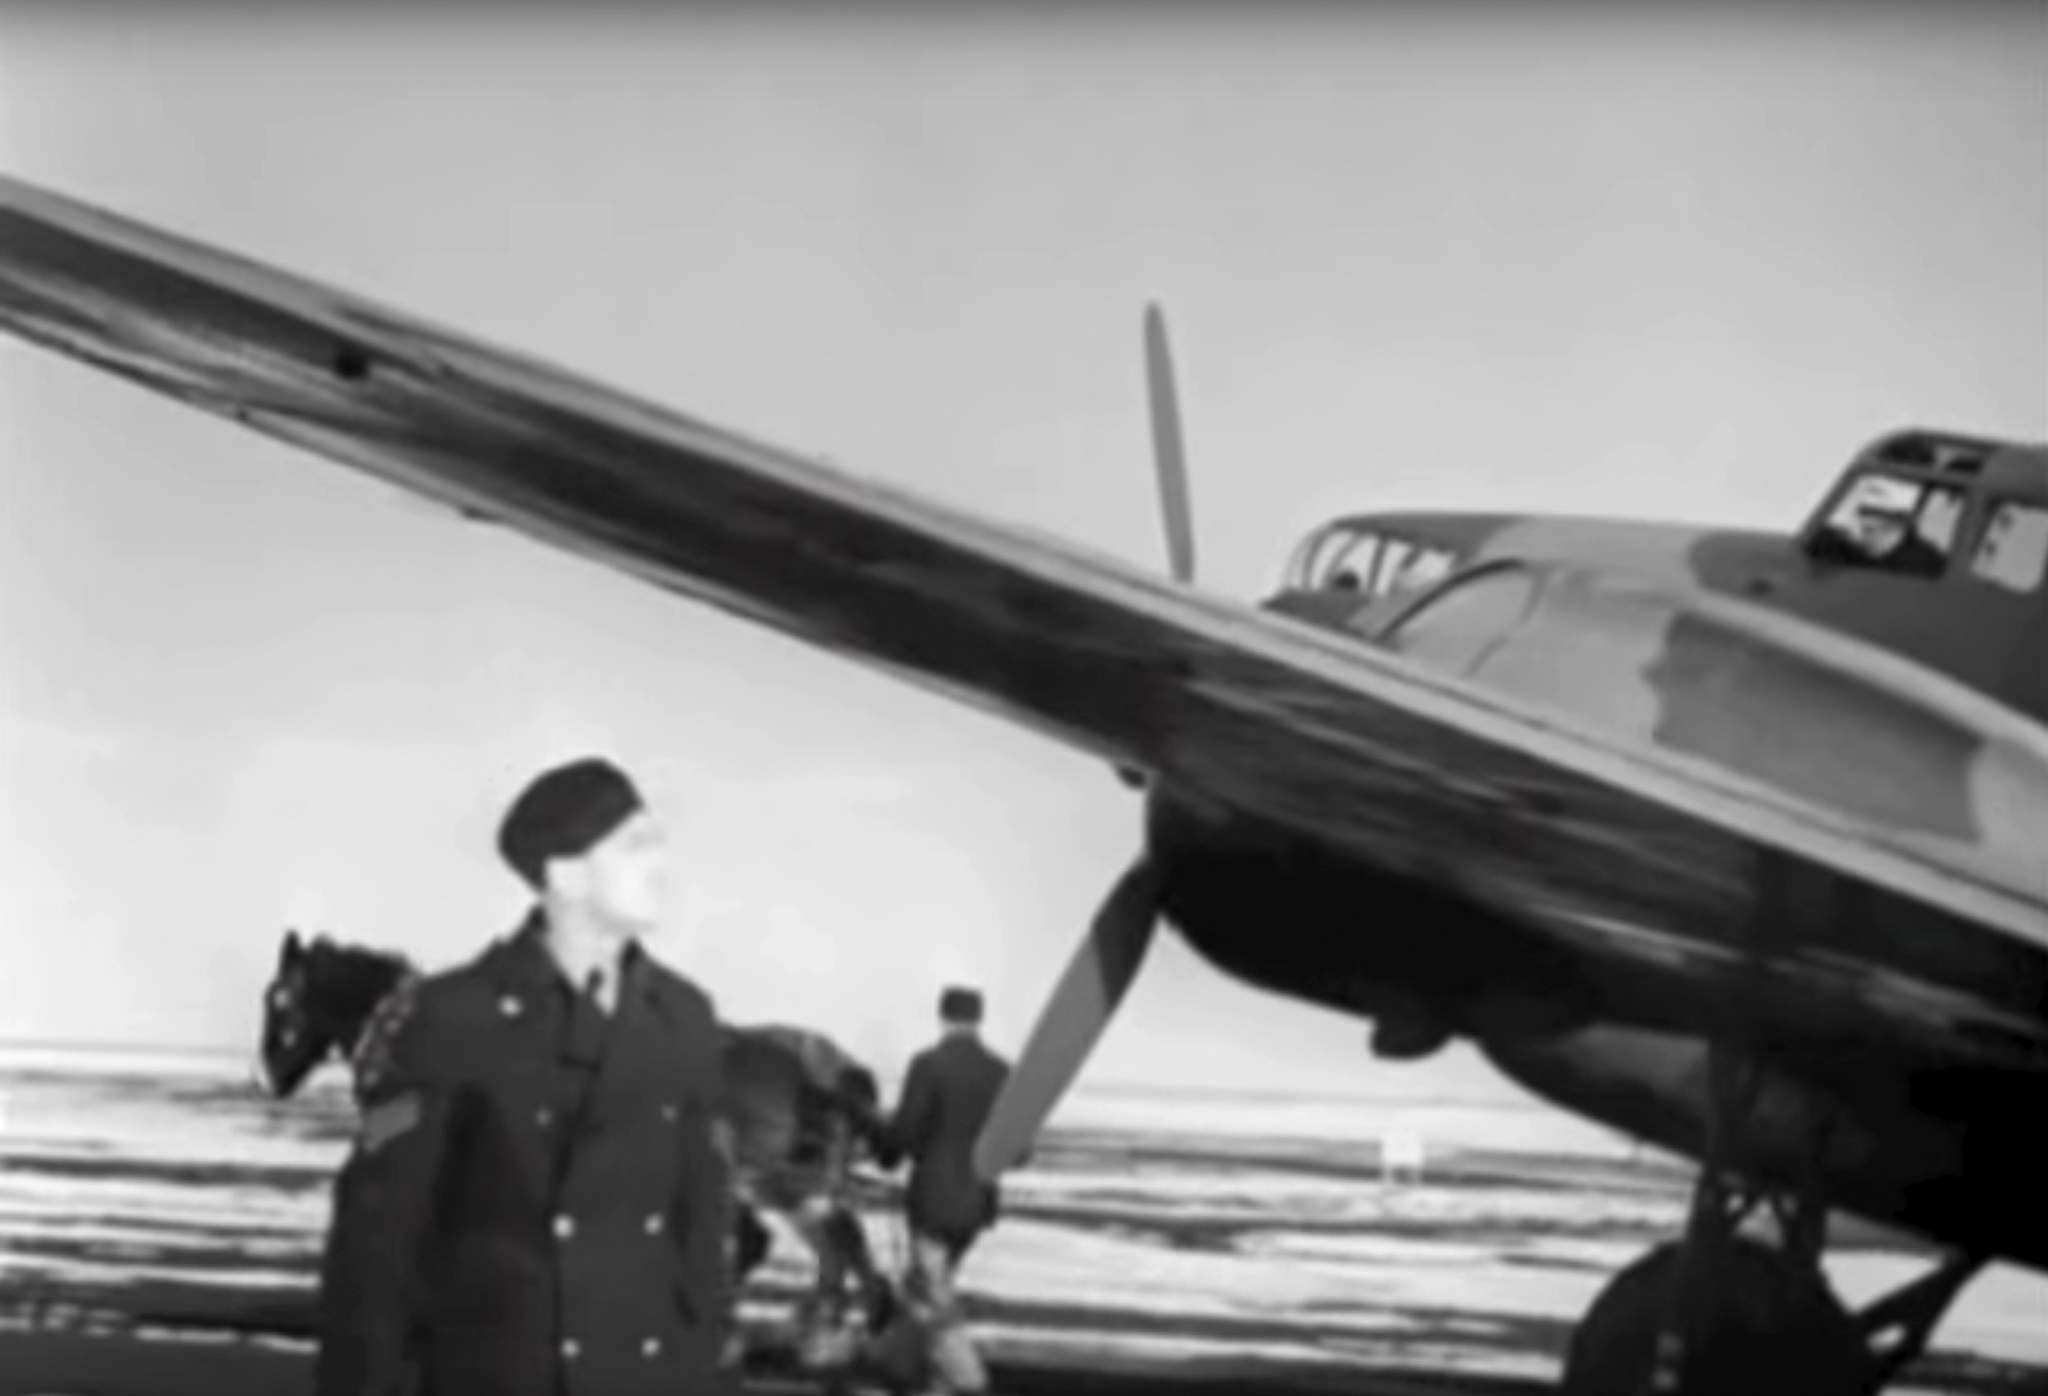 """I know it was all hush-hush back then, but to see a World War Two plane and see locals pulling it would have been quite a sight,"" Wayne Arseny said. (National Film Board)"